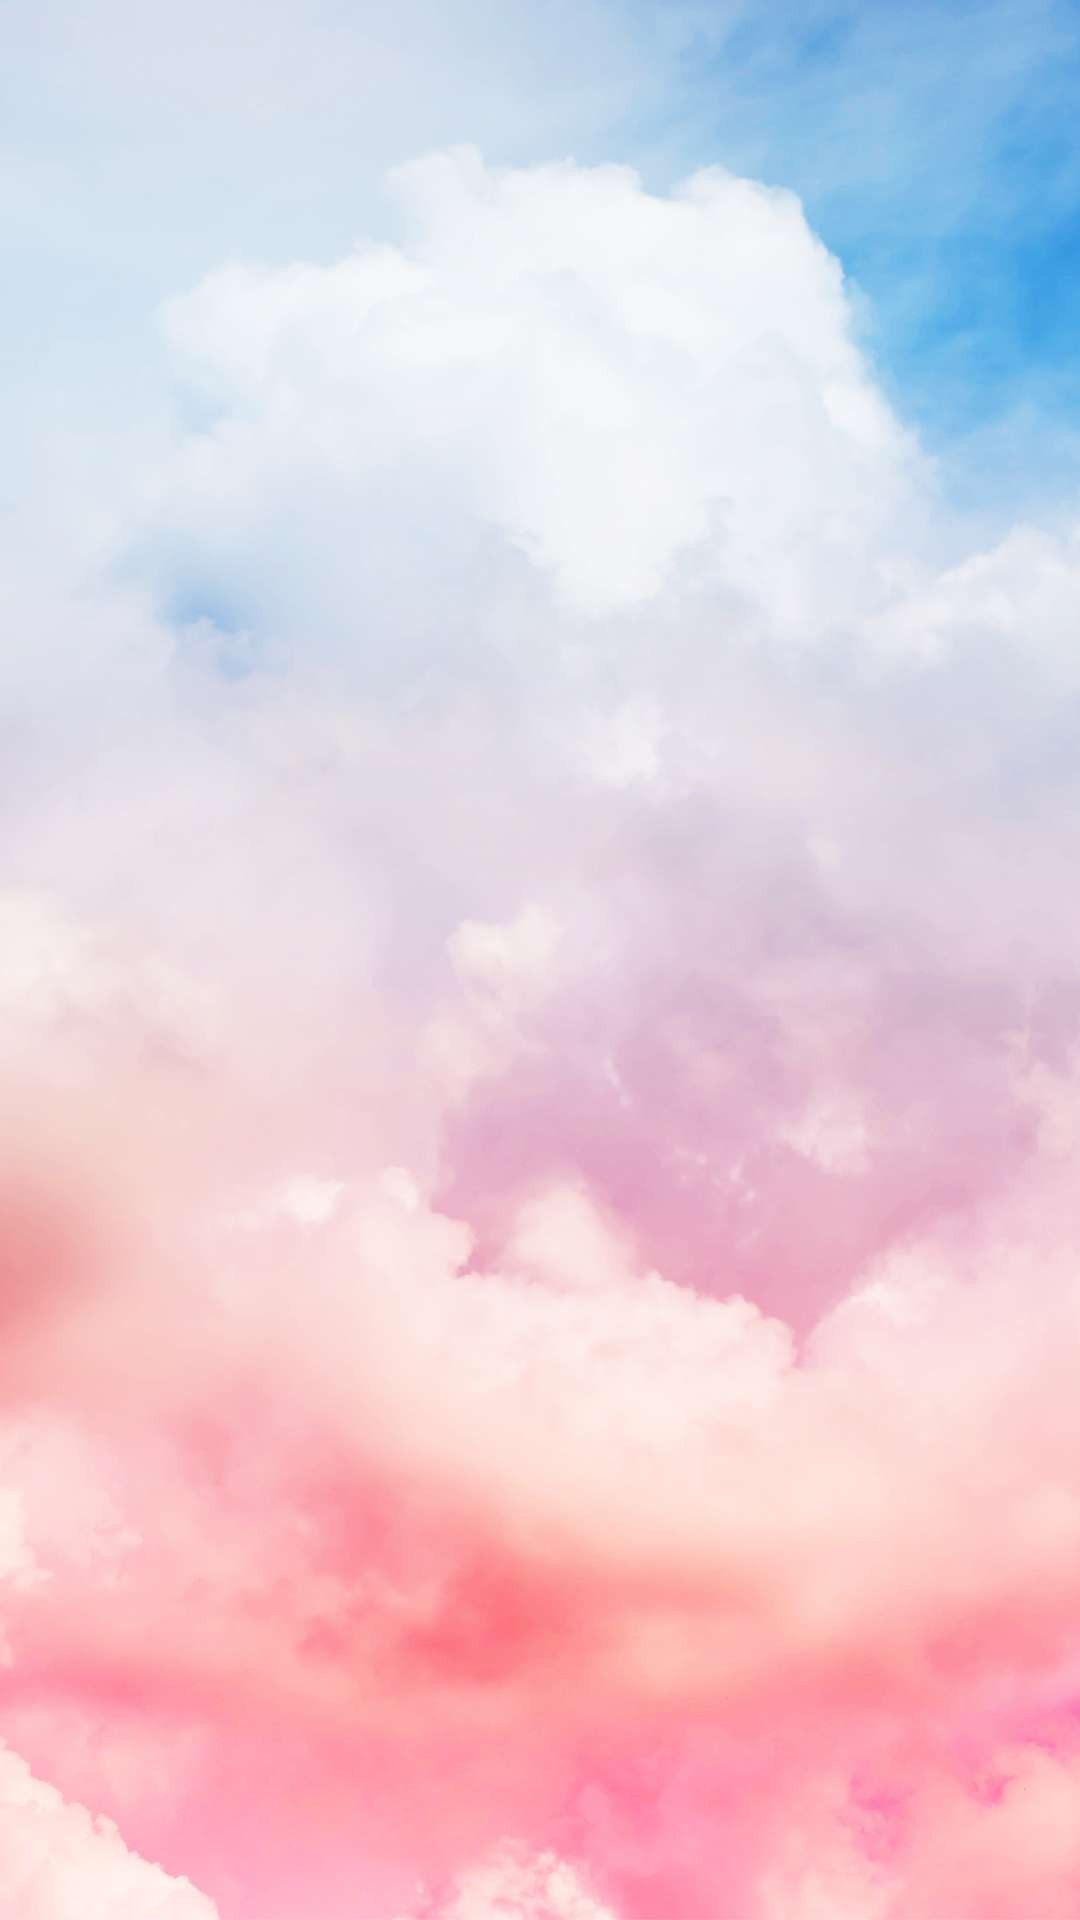 Pin By Dayana Orozco On 1 Iphone Wallpaper Sky Pink Clouds Wallpaper Pretty Wallpapers